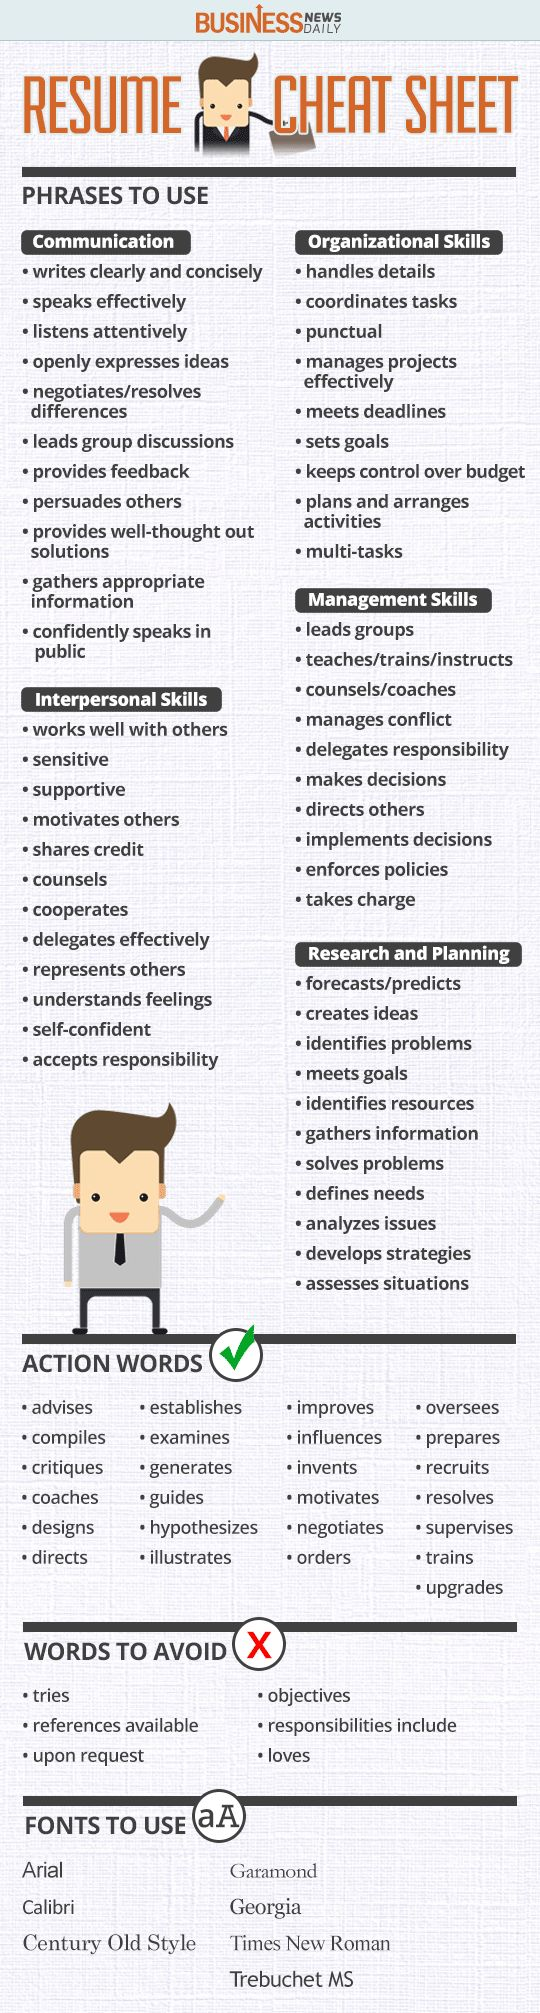 Opposenewapstandardsus  Terrific  Ideas About Resume On Pinterest  Cv Format Resume Cv And  With Lovable Resume Cheat Sheet Infographic Andrews Almost Done With A Complete Unit On Employment Which With Charming Academic Advisor Resume Sample Also Flight Instructor Resume In Addition Good Skills To Add To Resume And Onet Resume As Well As Sales Account Executive Resume Additionally Building A Professional Resume From Pinterestcom With Opposenewapstandardsus  Lovable  Ideas About Resume On Pinterest  Cv Format Resume Cv And  With Charming Resume Cheat Sheet Infographic Andrews Almost Done With A Complete Unit On Employment Which And Terrific Academic Advisor Resume Sample Also Flight Instructor Resume In Addition Good Skills To Add To Resume From Pinterestcom